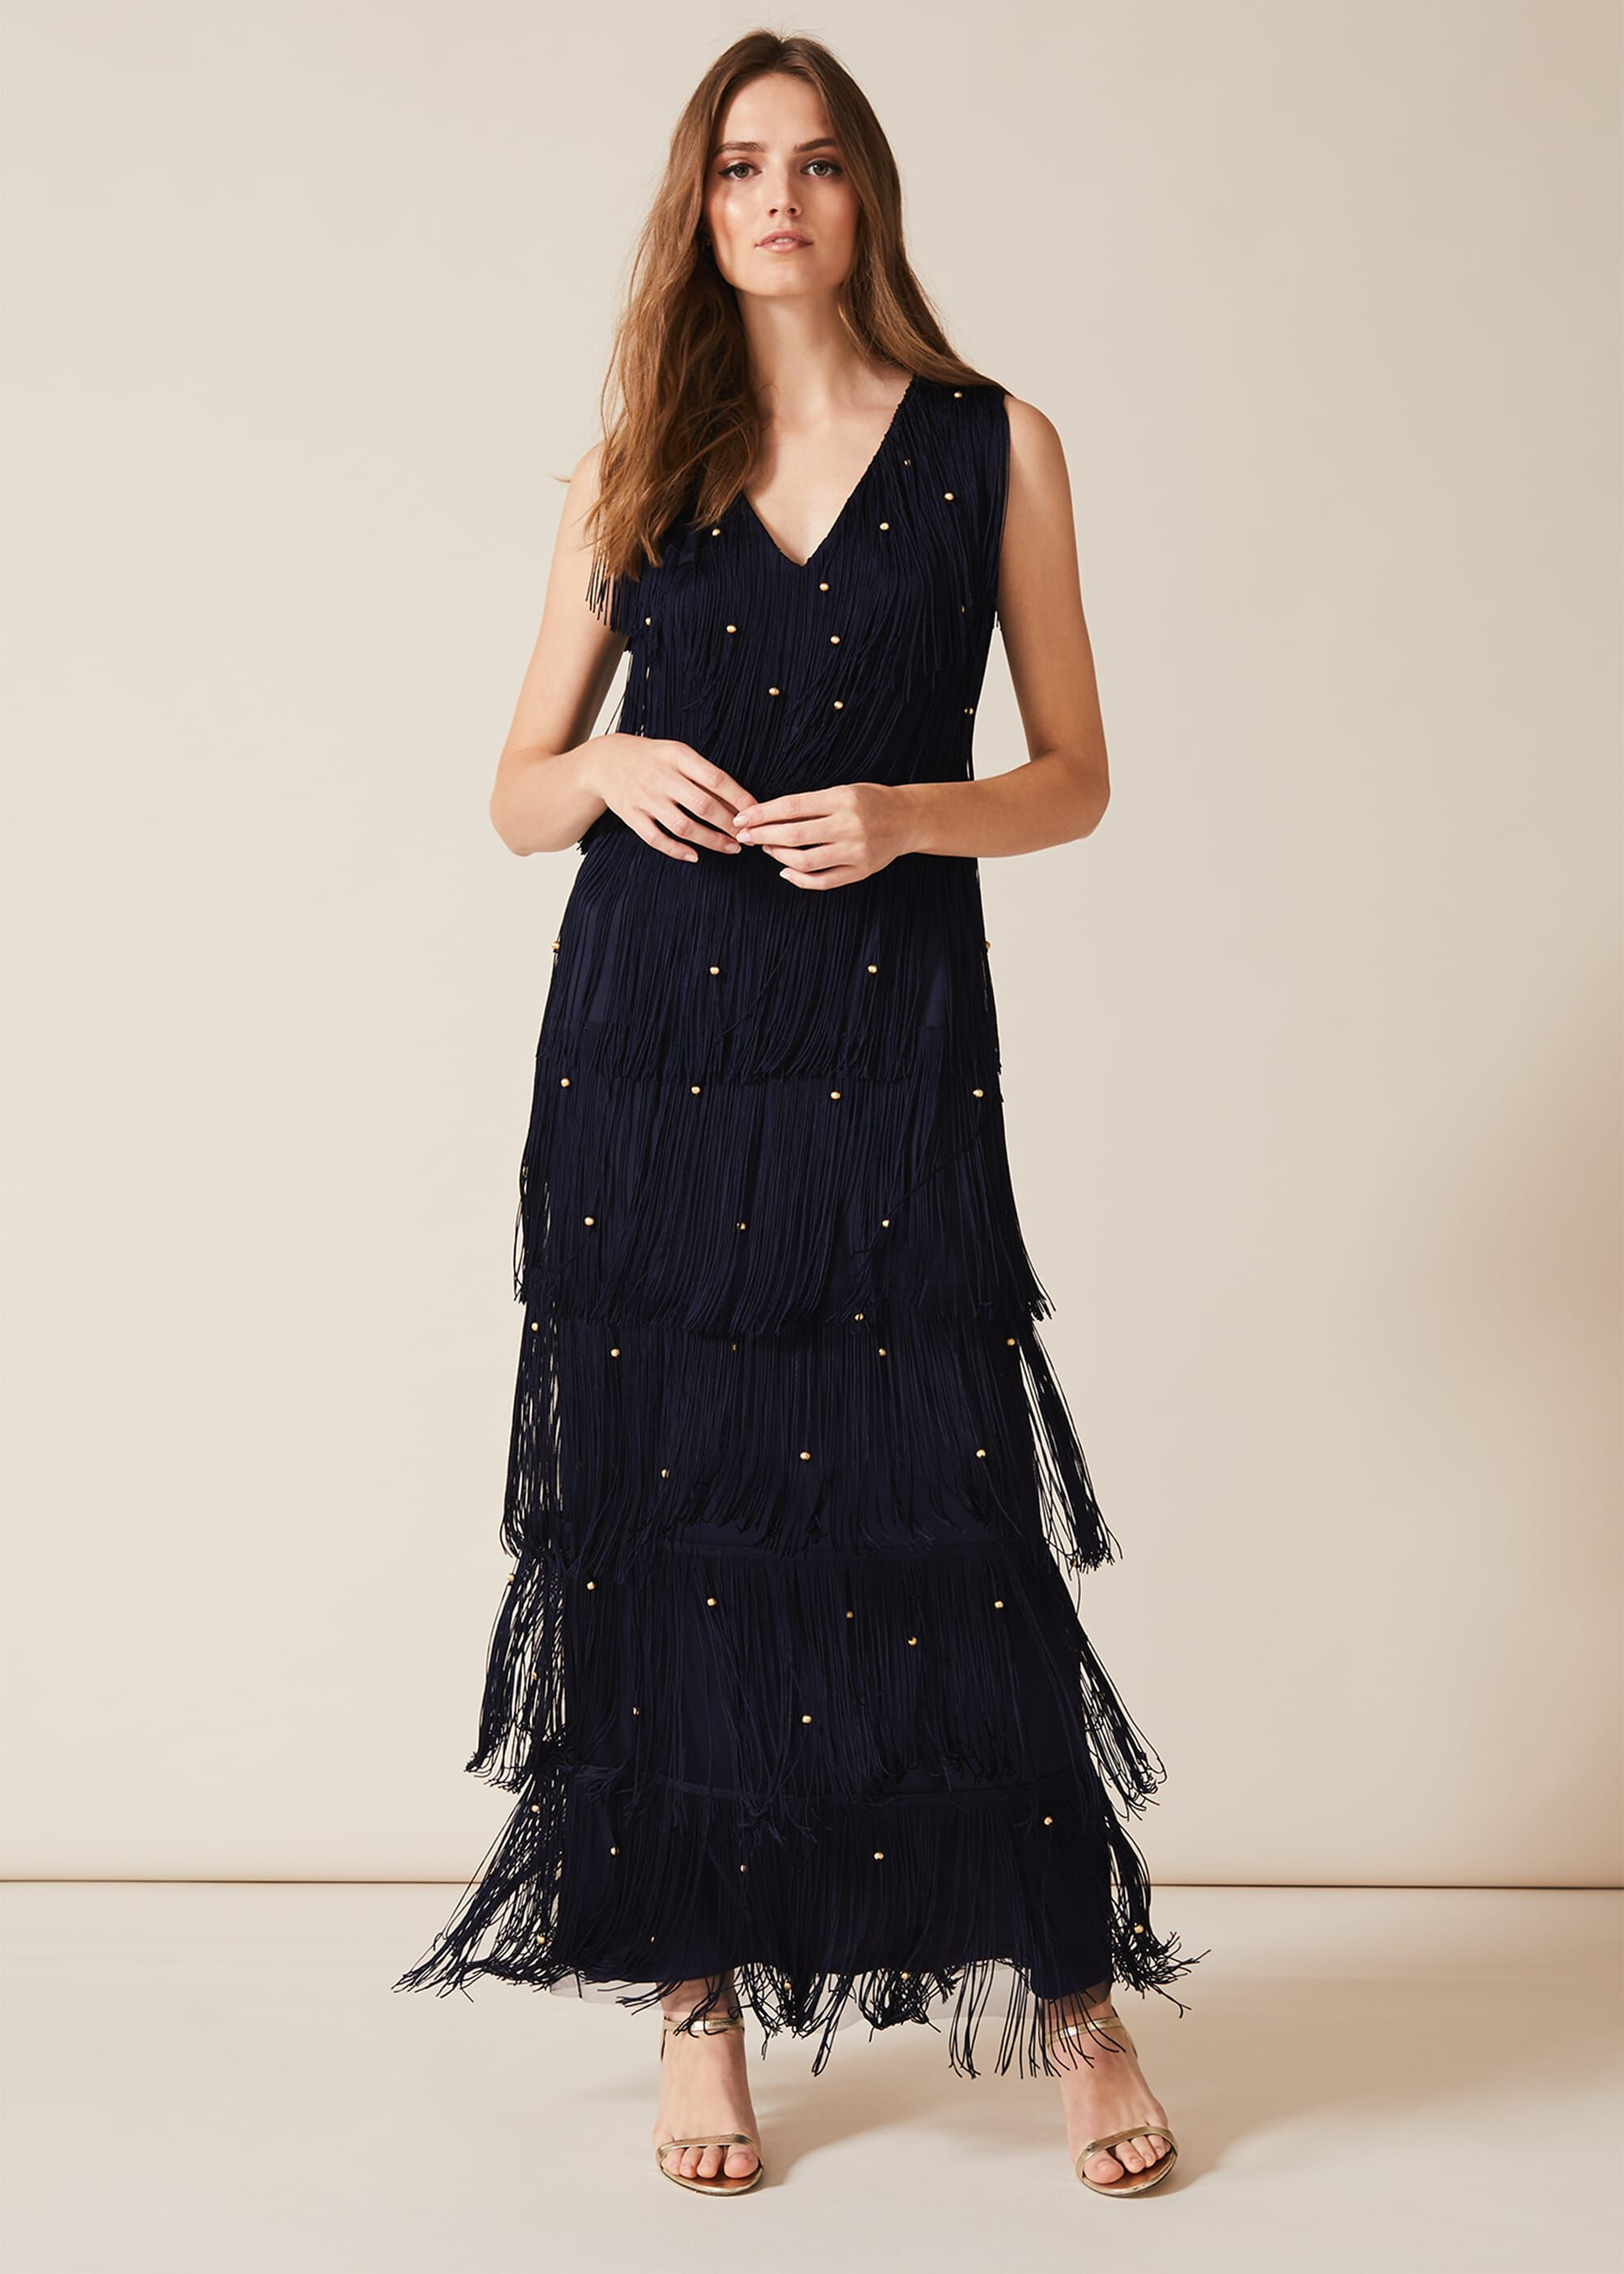 Vintage Evening Dresses and Formal Evening Gowns Phase Eight Kandice Fringe Maxi Dress Blue Maxi Occasion Dress £179.00 AT vintagedancer.com